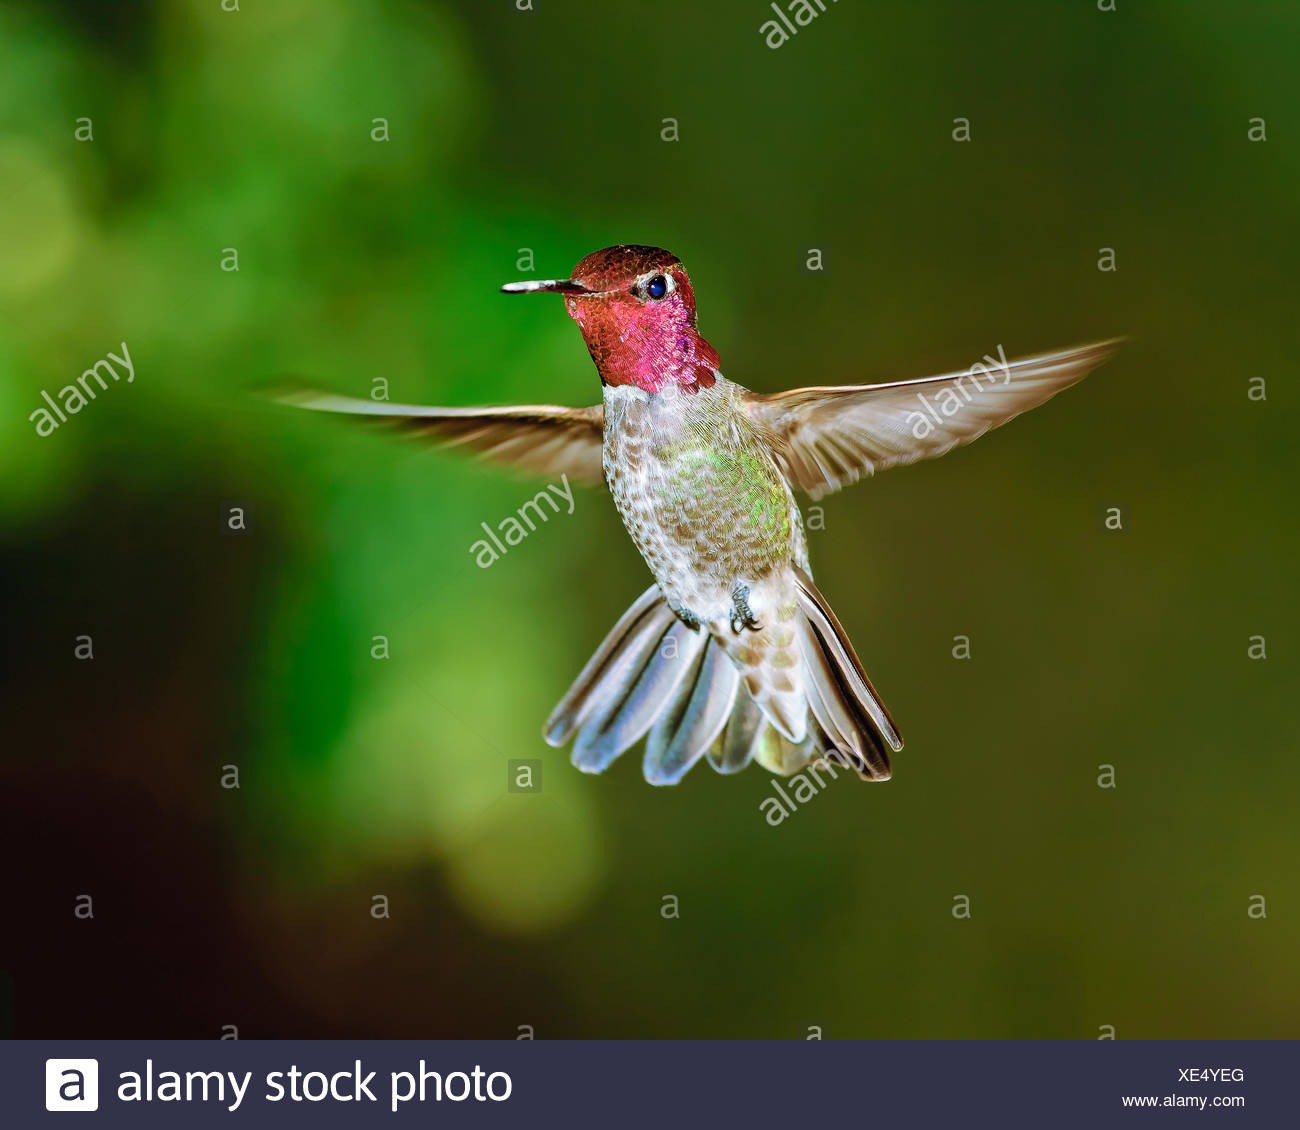 Un homme Anna's hummingbird planant au milieu de l'air, l'Arizona, l'Amérique, USA Photo Stock